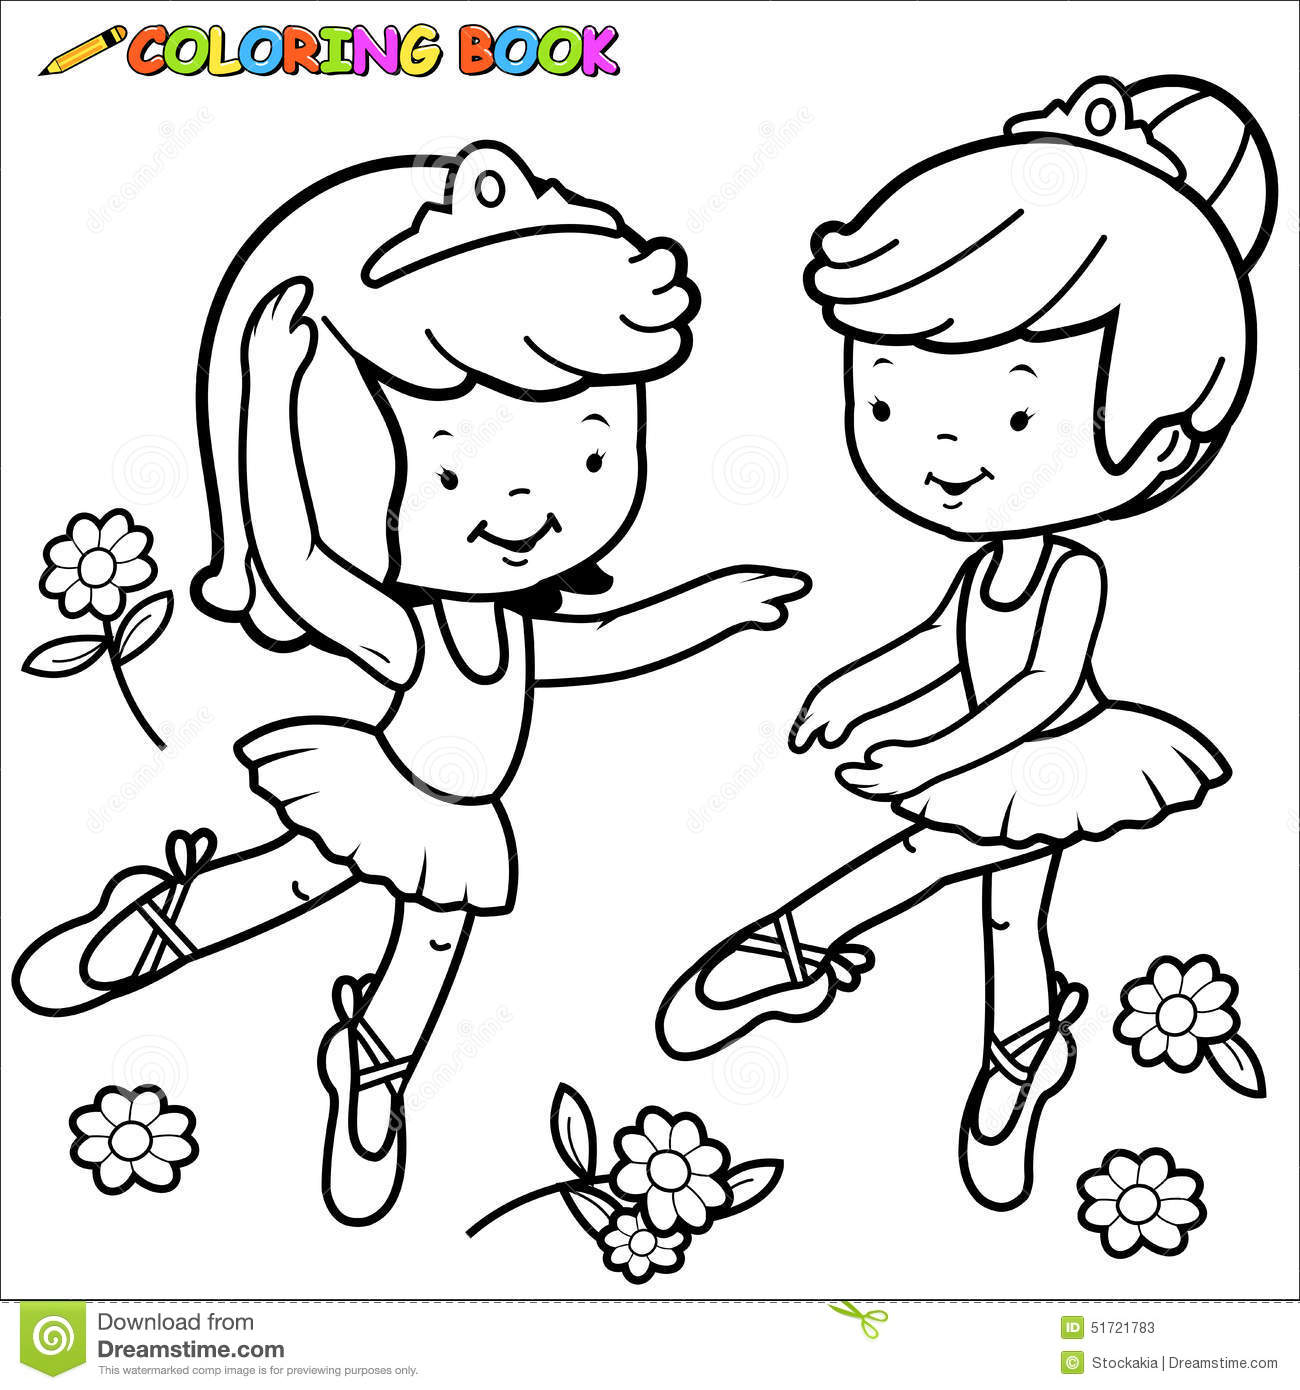 Coloring pages ballerina - Coloring Page Ballerina Girls Dancing